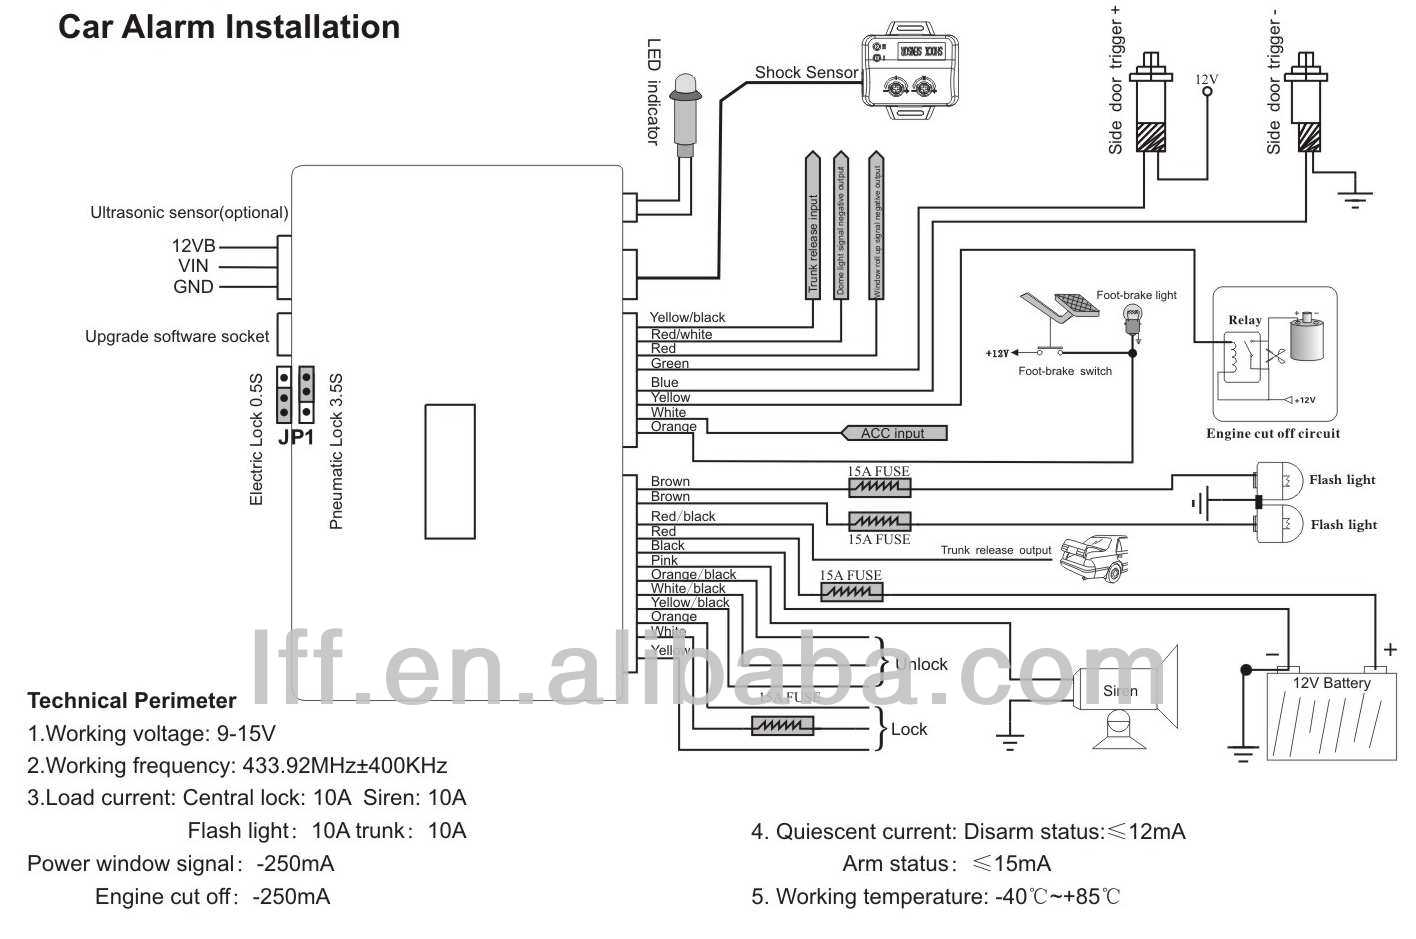 Safeguard Alarm Wiring Diagram